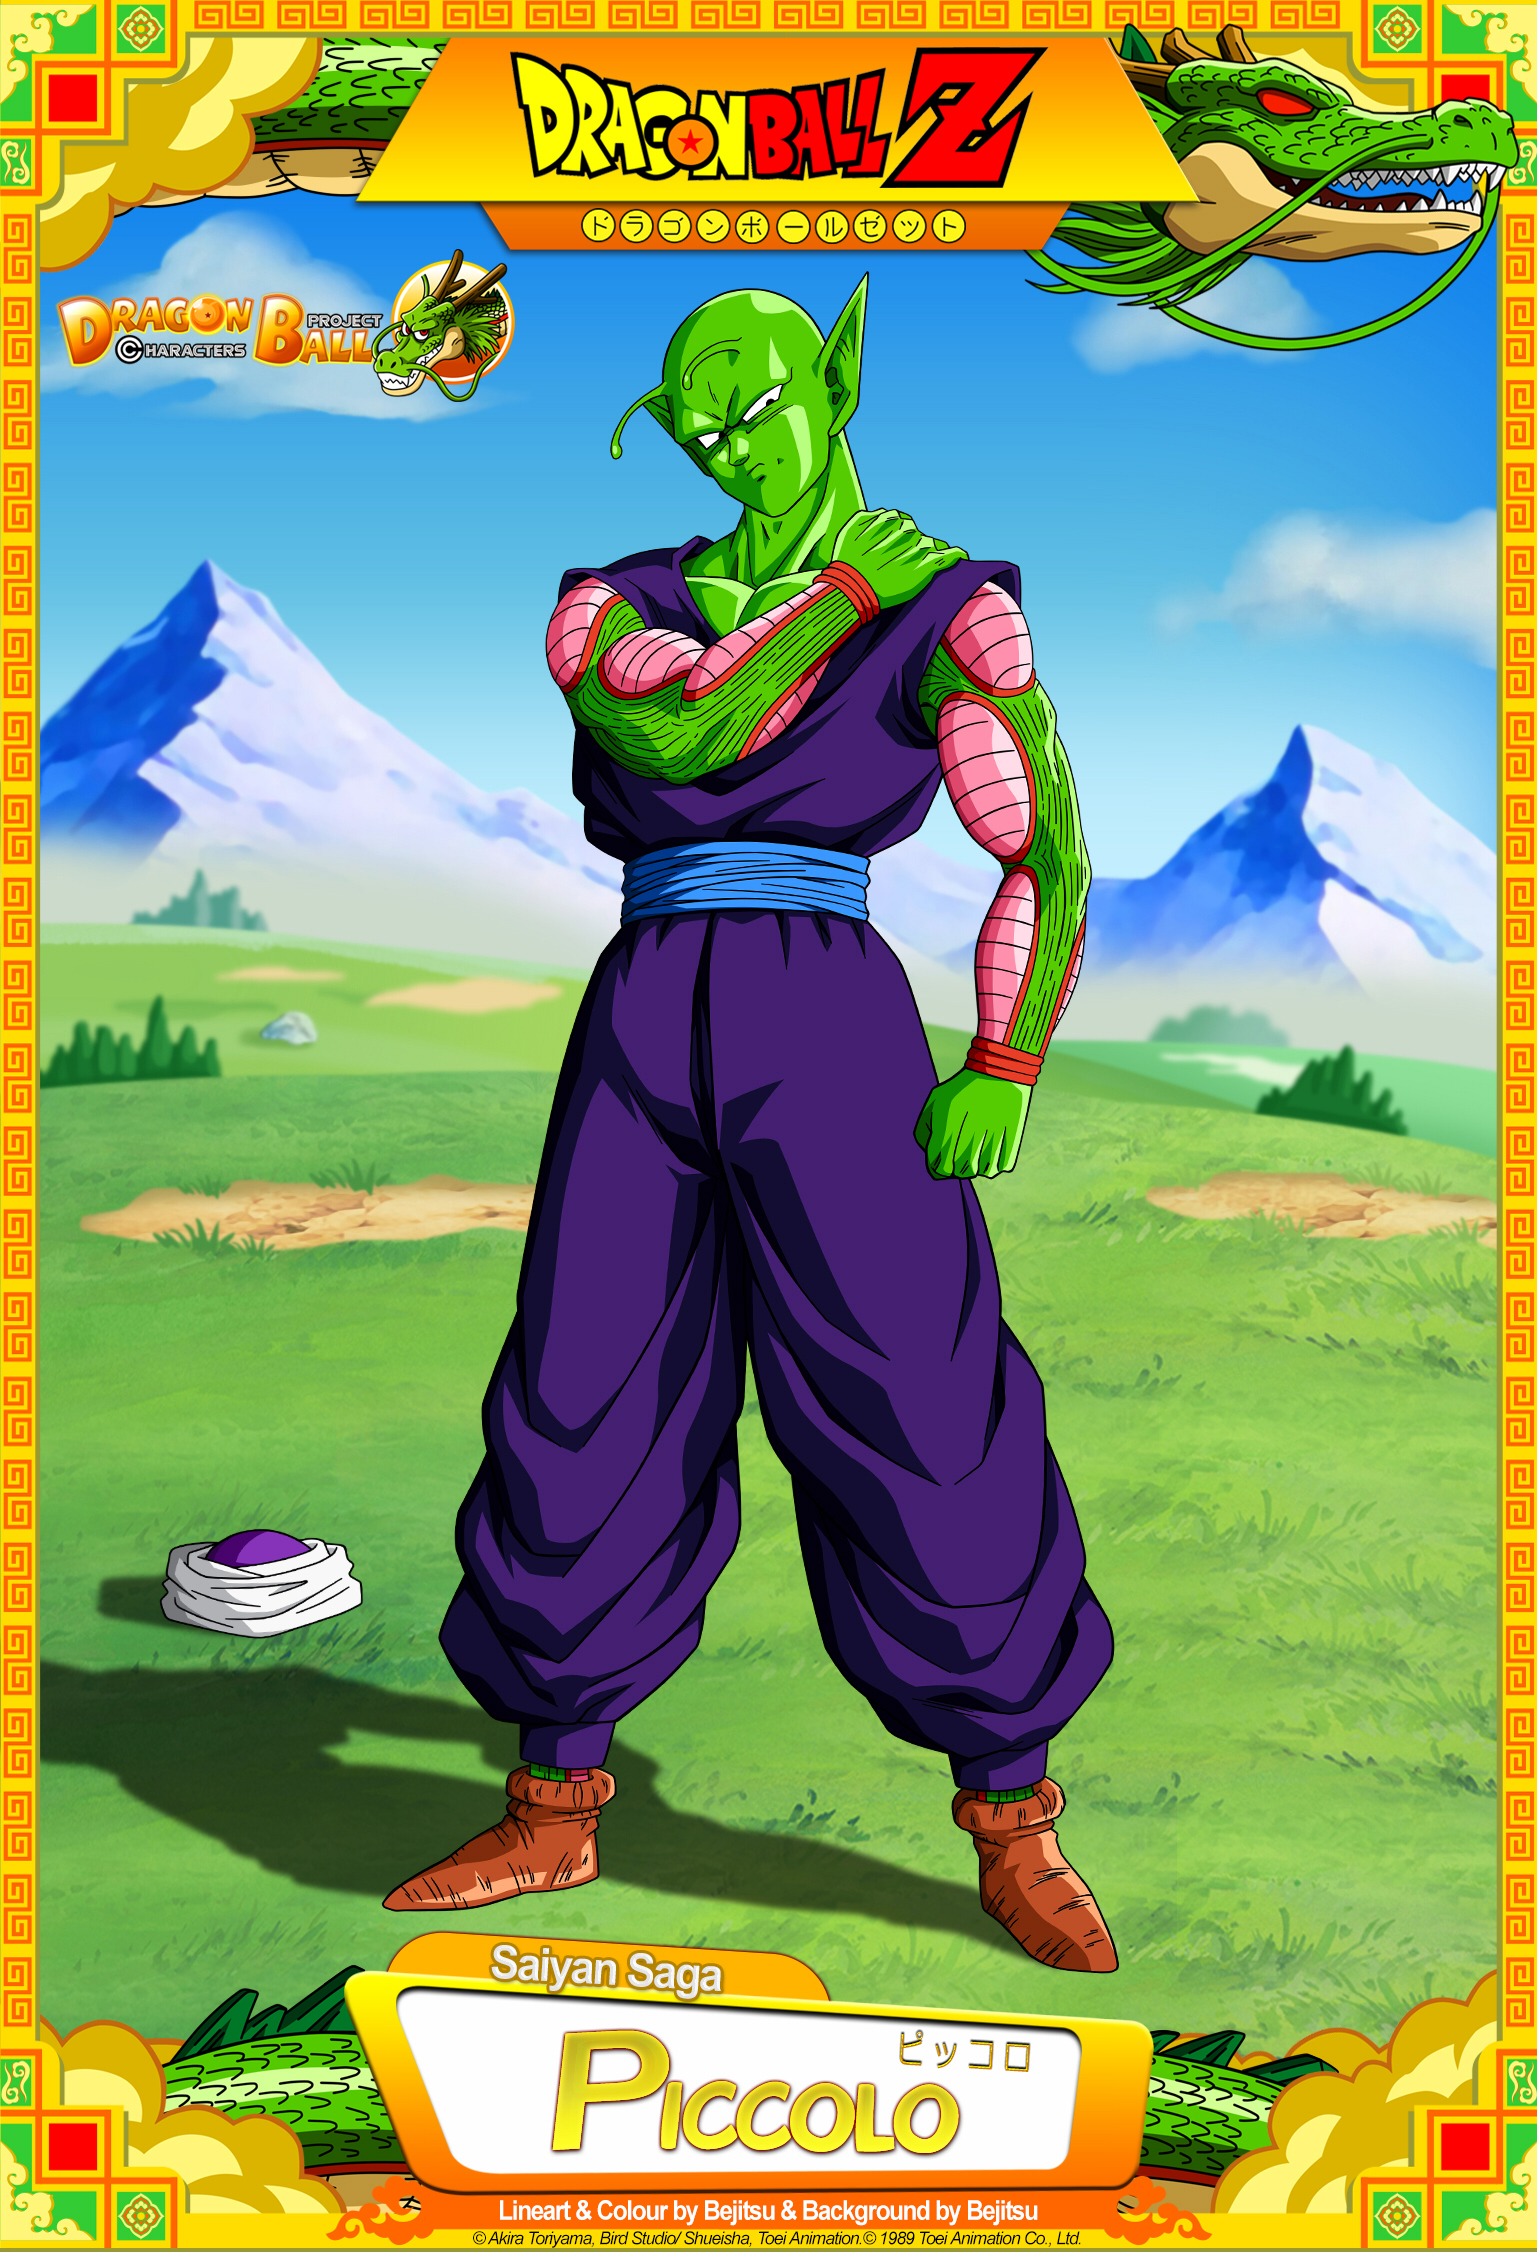 Dragon Ball Z - Piccolo by DBCProject on DeviantArt